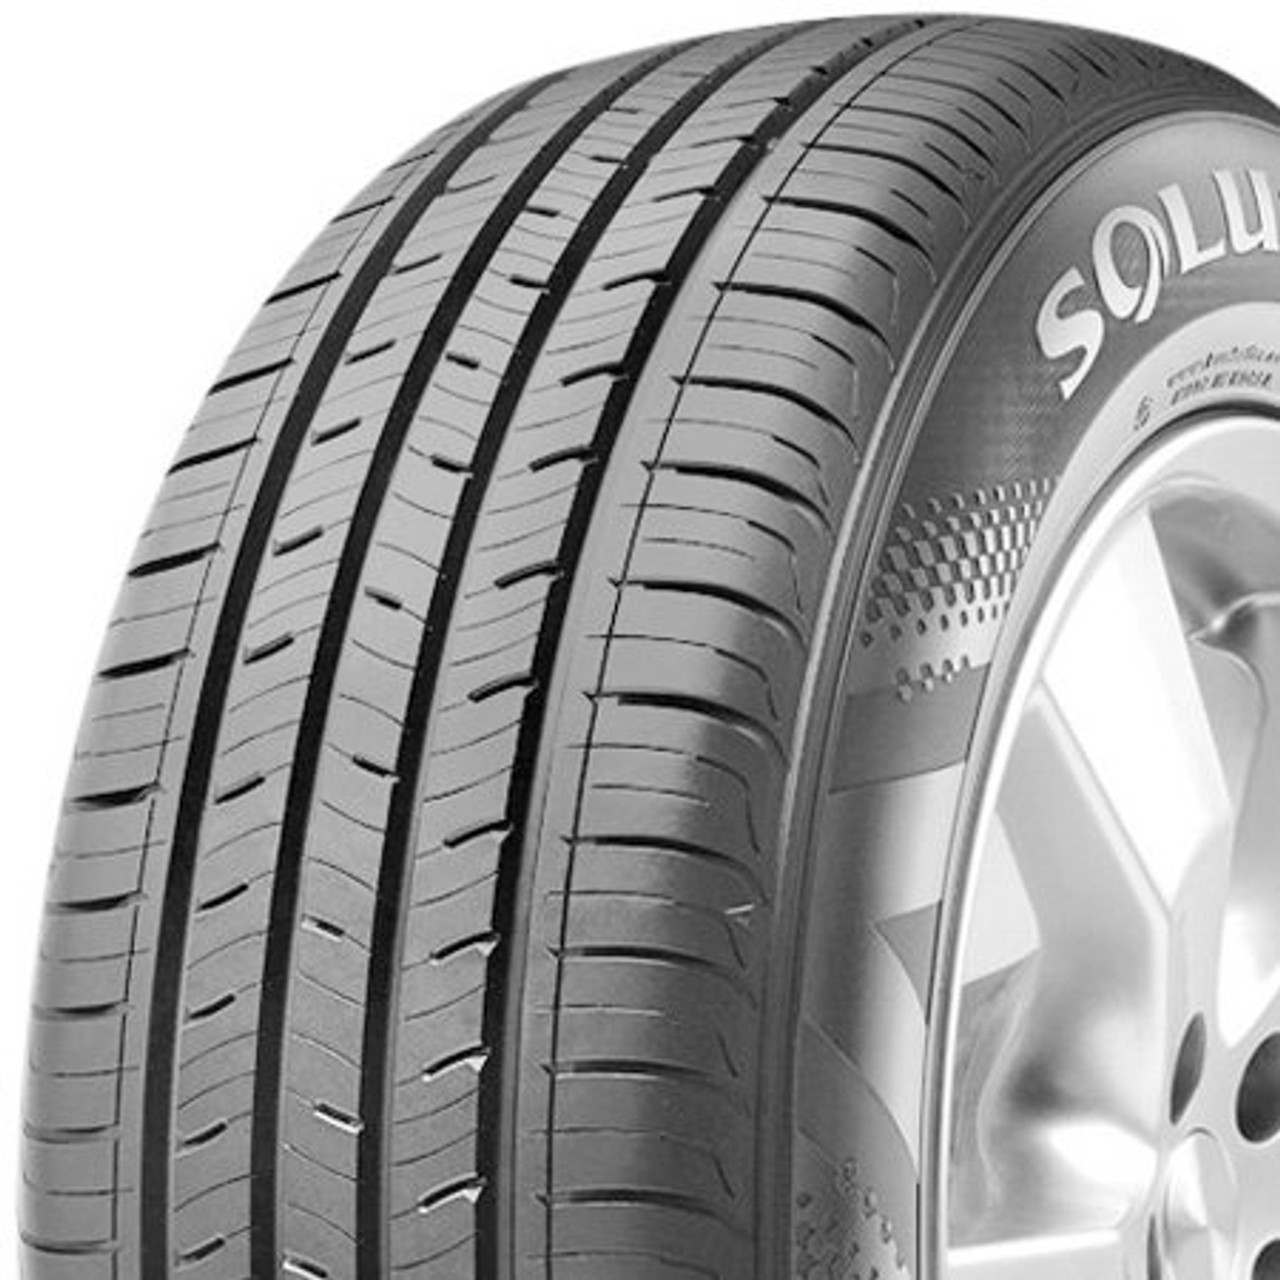 Kumho Solus TA31 Review - Priority Tire